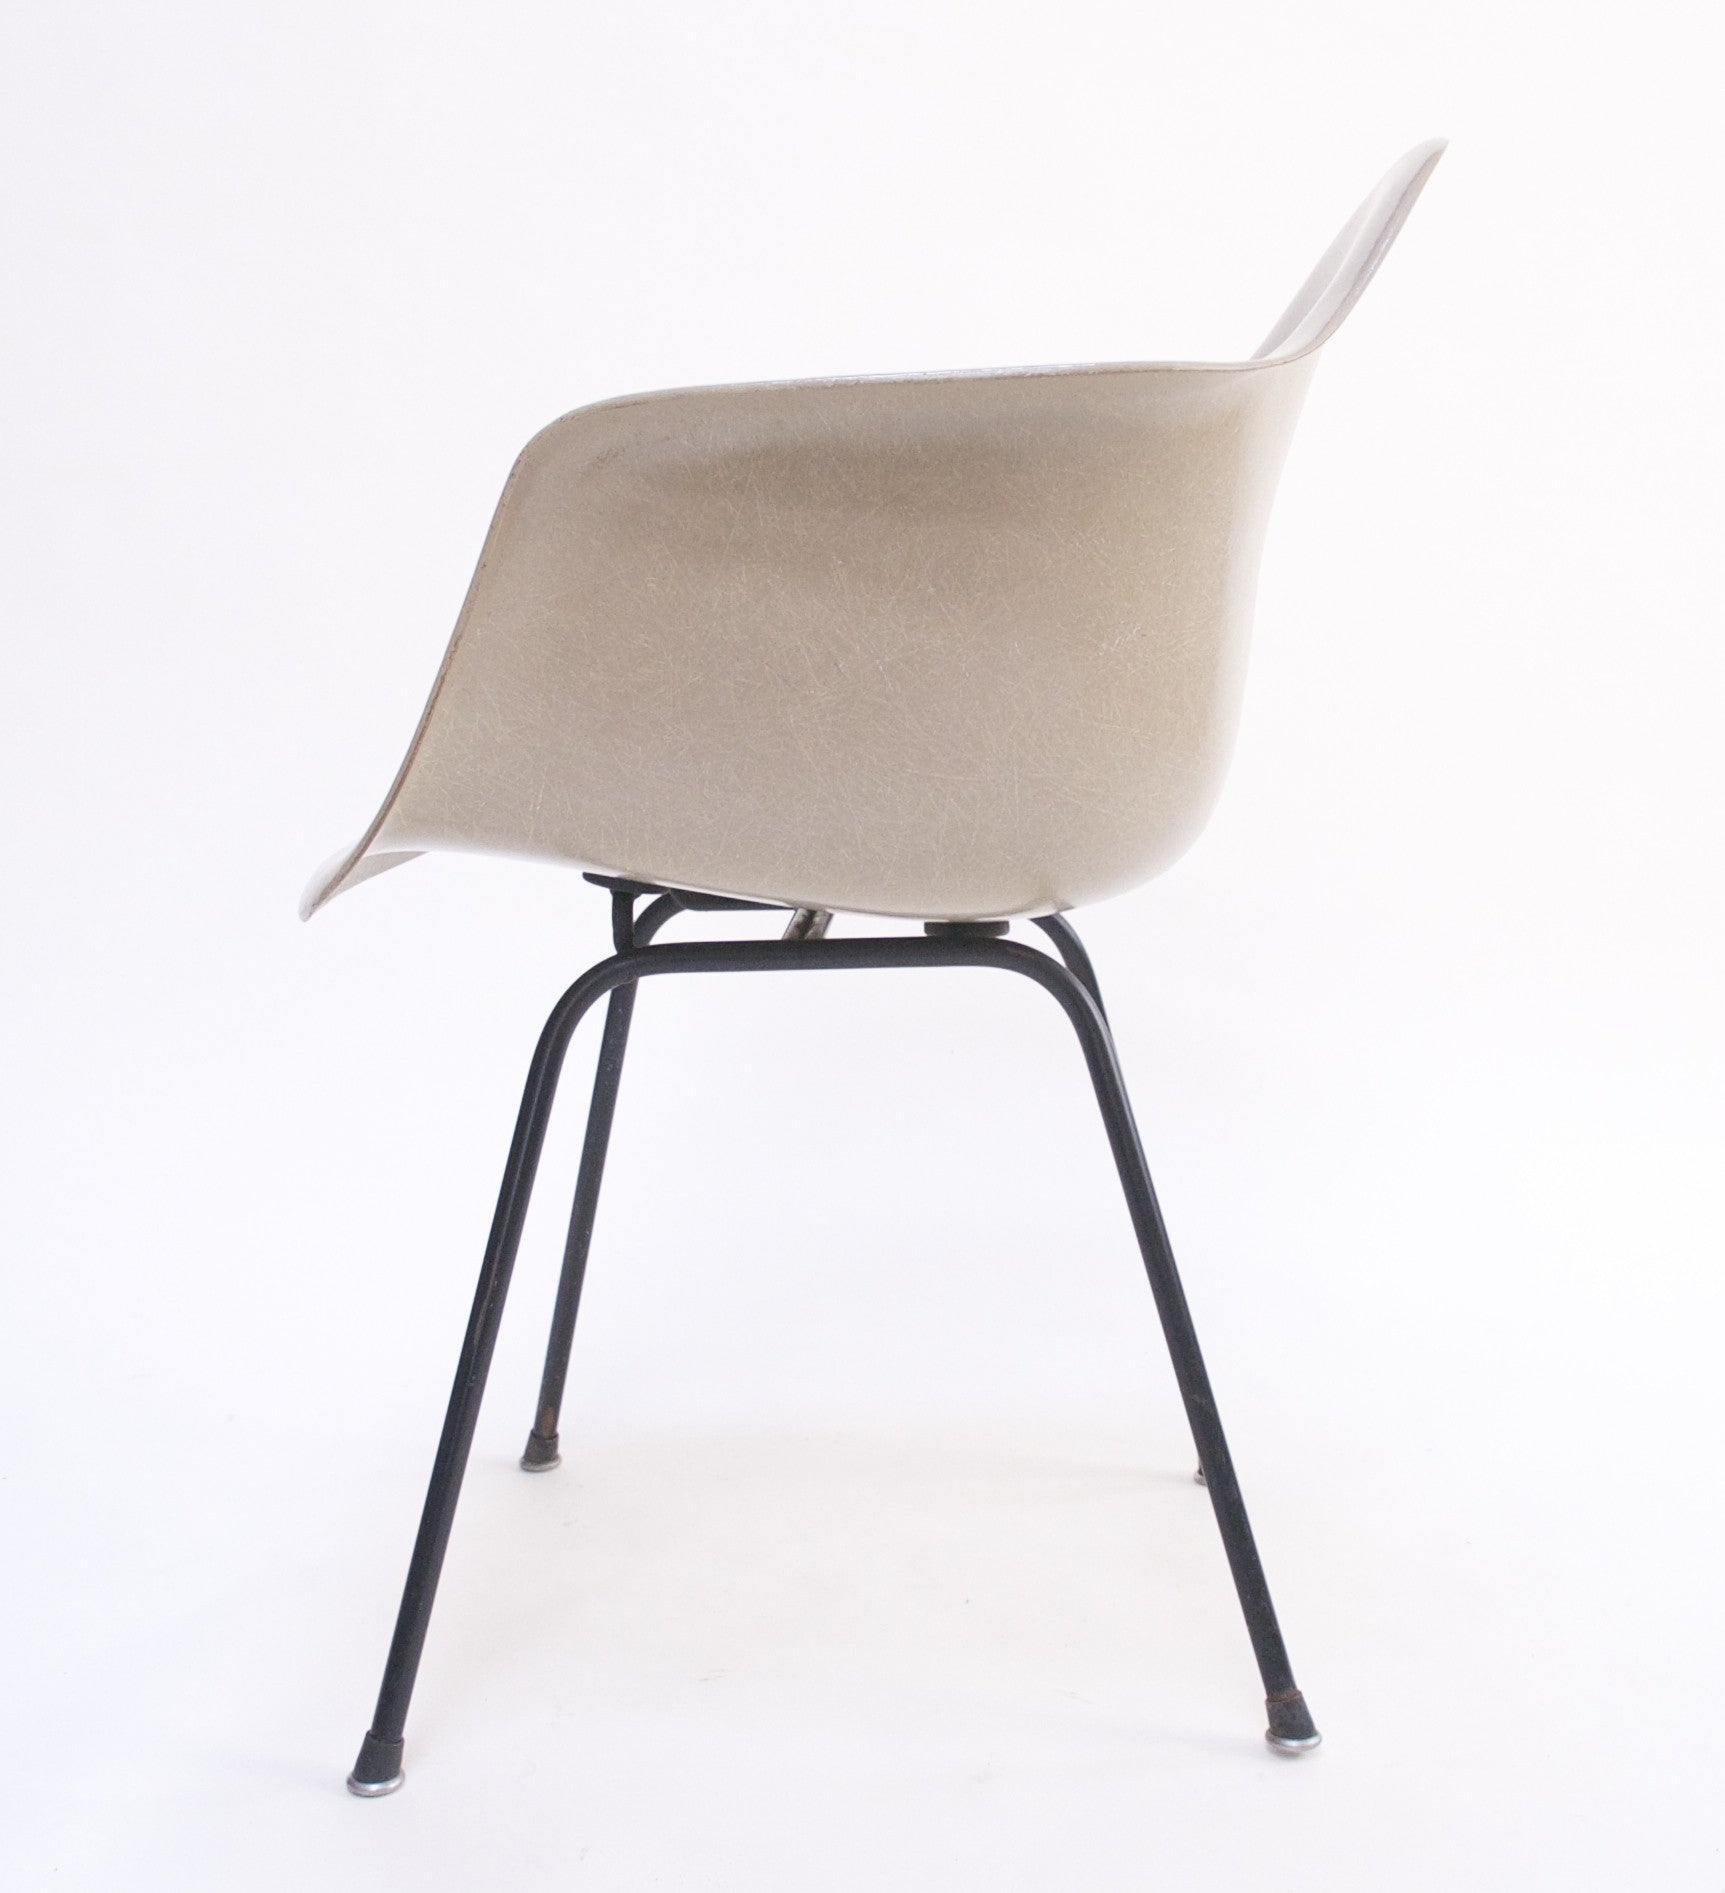 SOLD Greige Eames Herman Miller Fiberglass Arm Shell Chair 1954